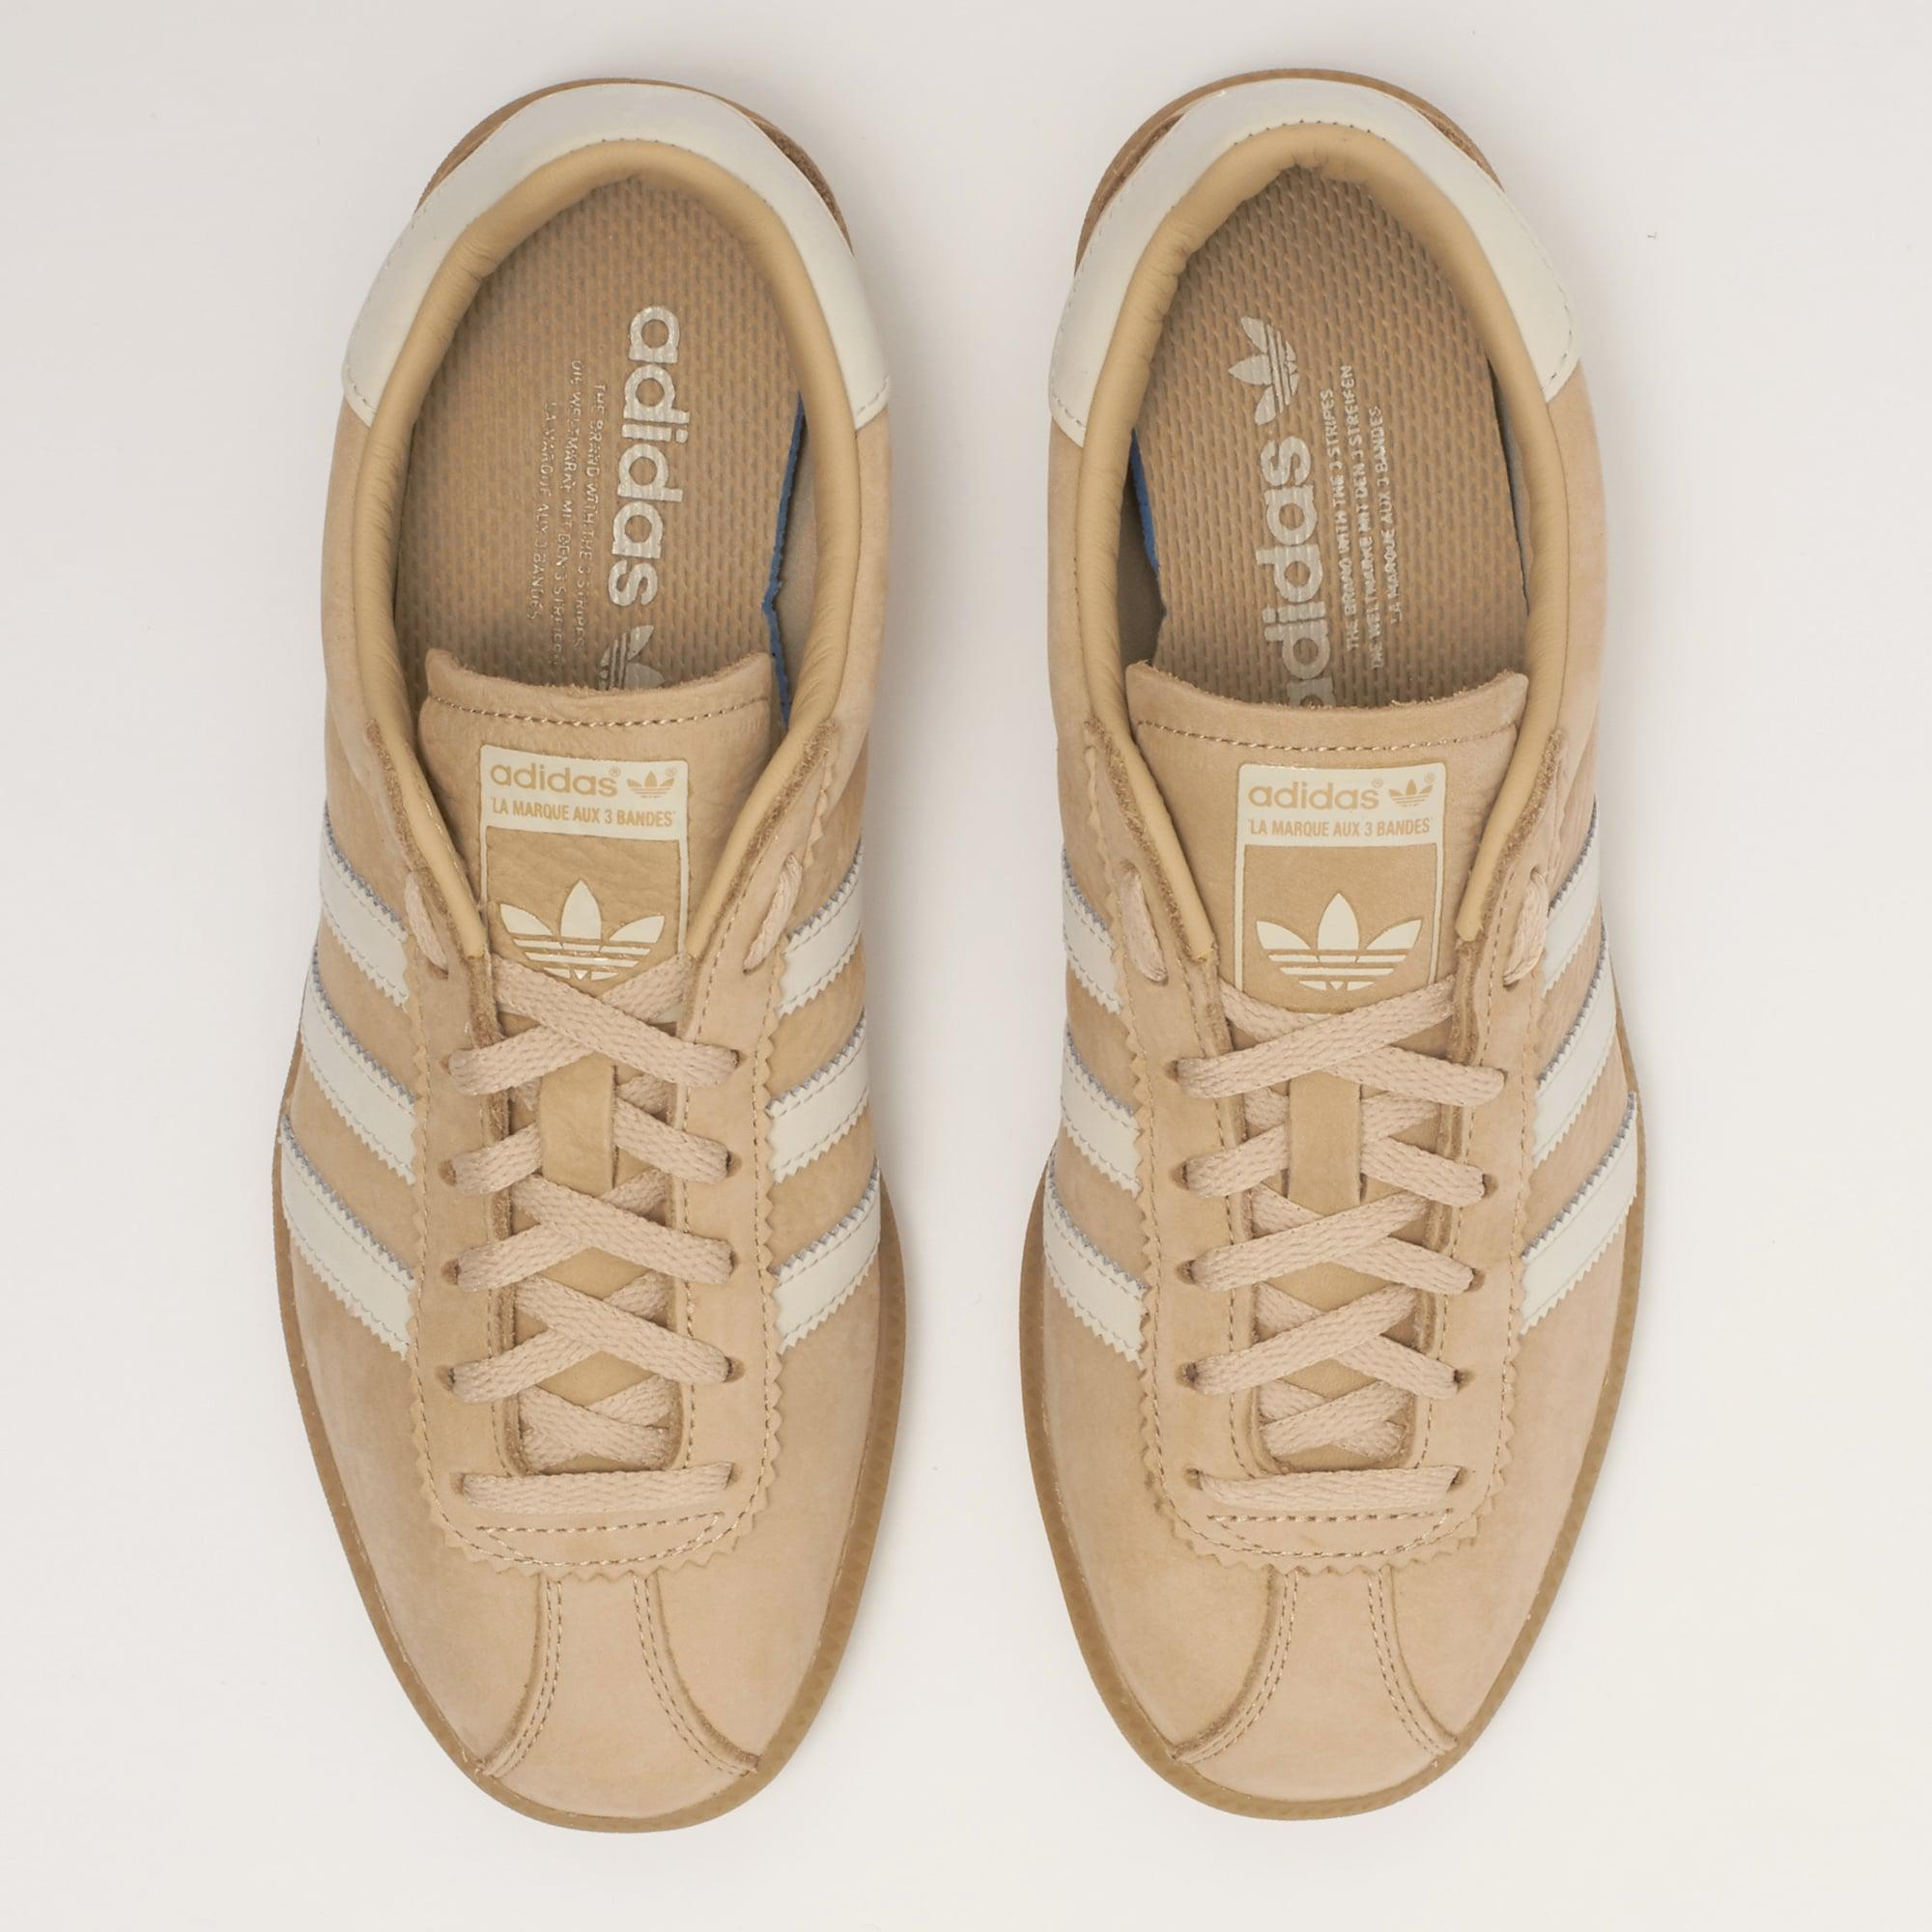 Lyst - adidas Originals Bermuda - St Pale Nude   Clear Brown in ... 4333d97c29c7a